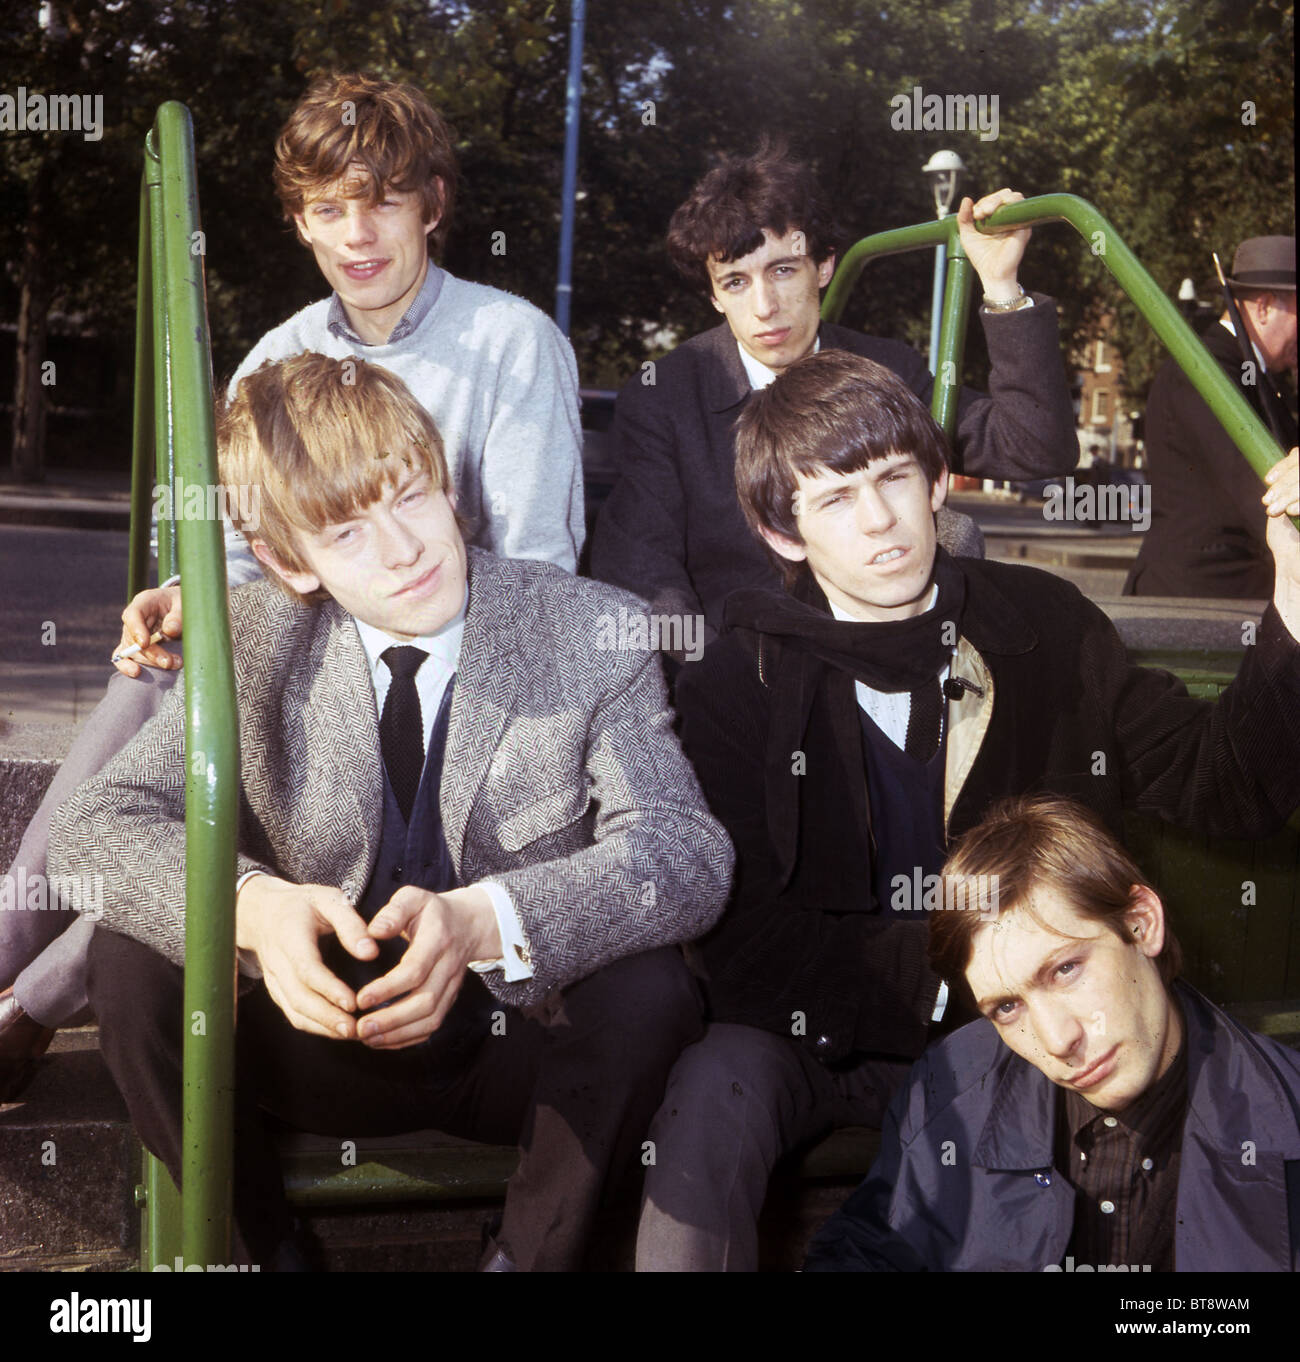 ROLLING STONES on London Embankment 1963. Clockwise from top l: Mick, Bill, Keith, Charlie (lower) and Bill. Photo - Stock Image